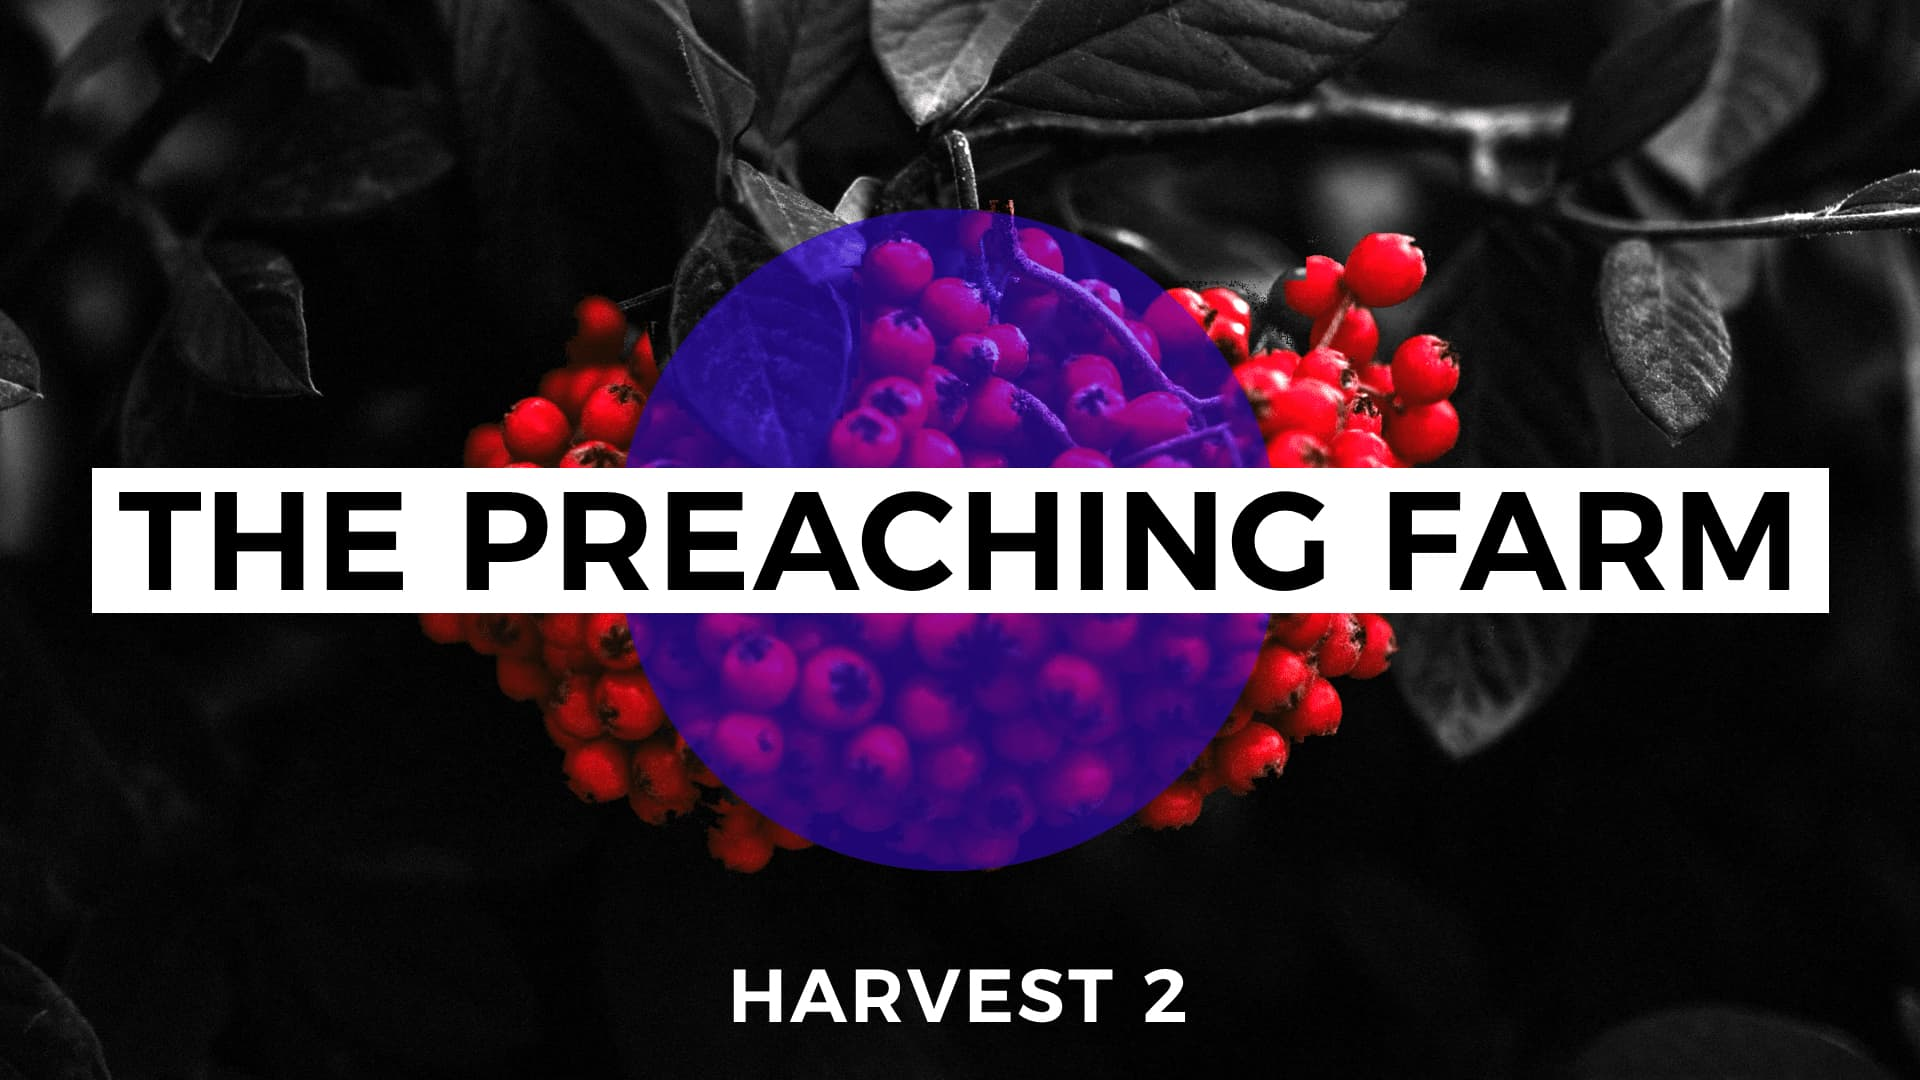 The Preaching Farm: Harvest 2 cover